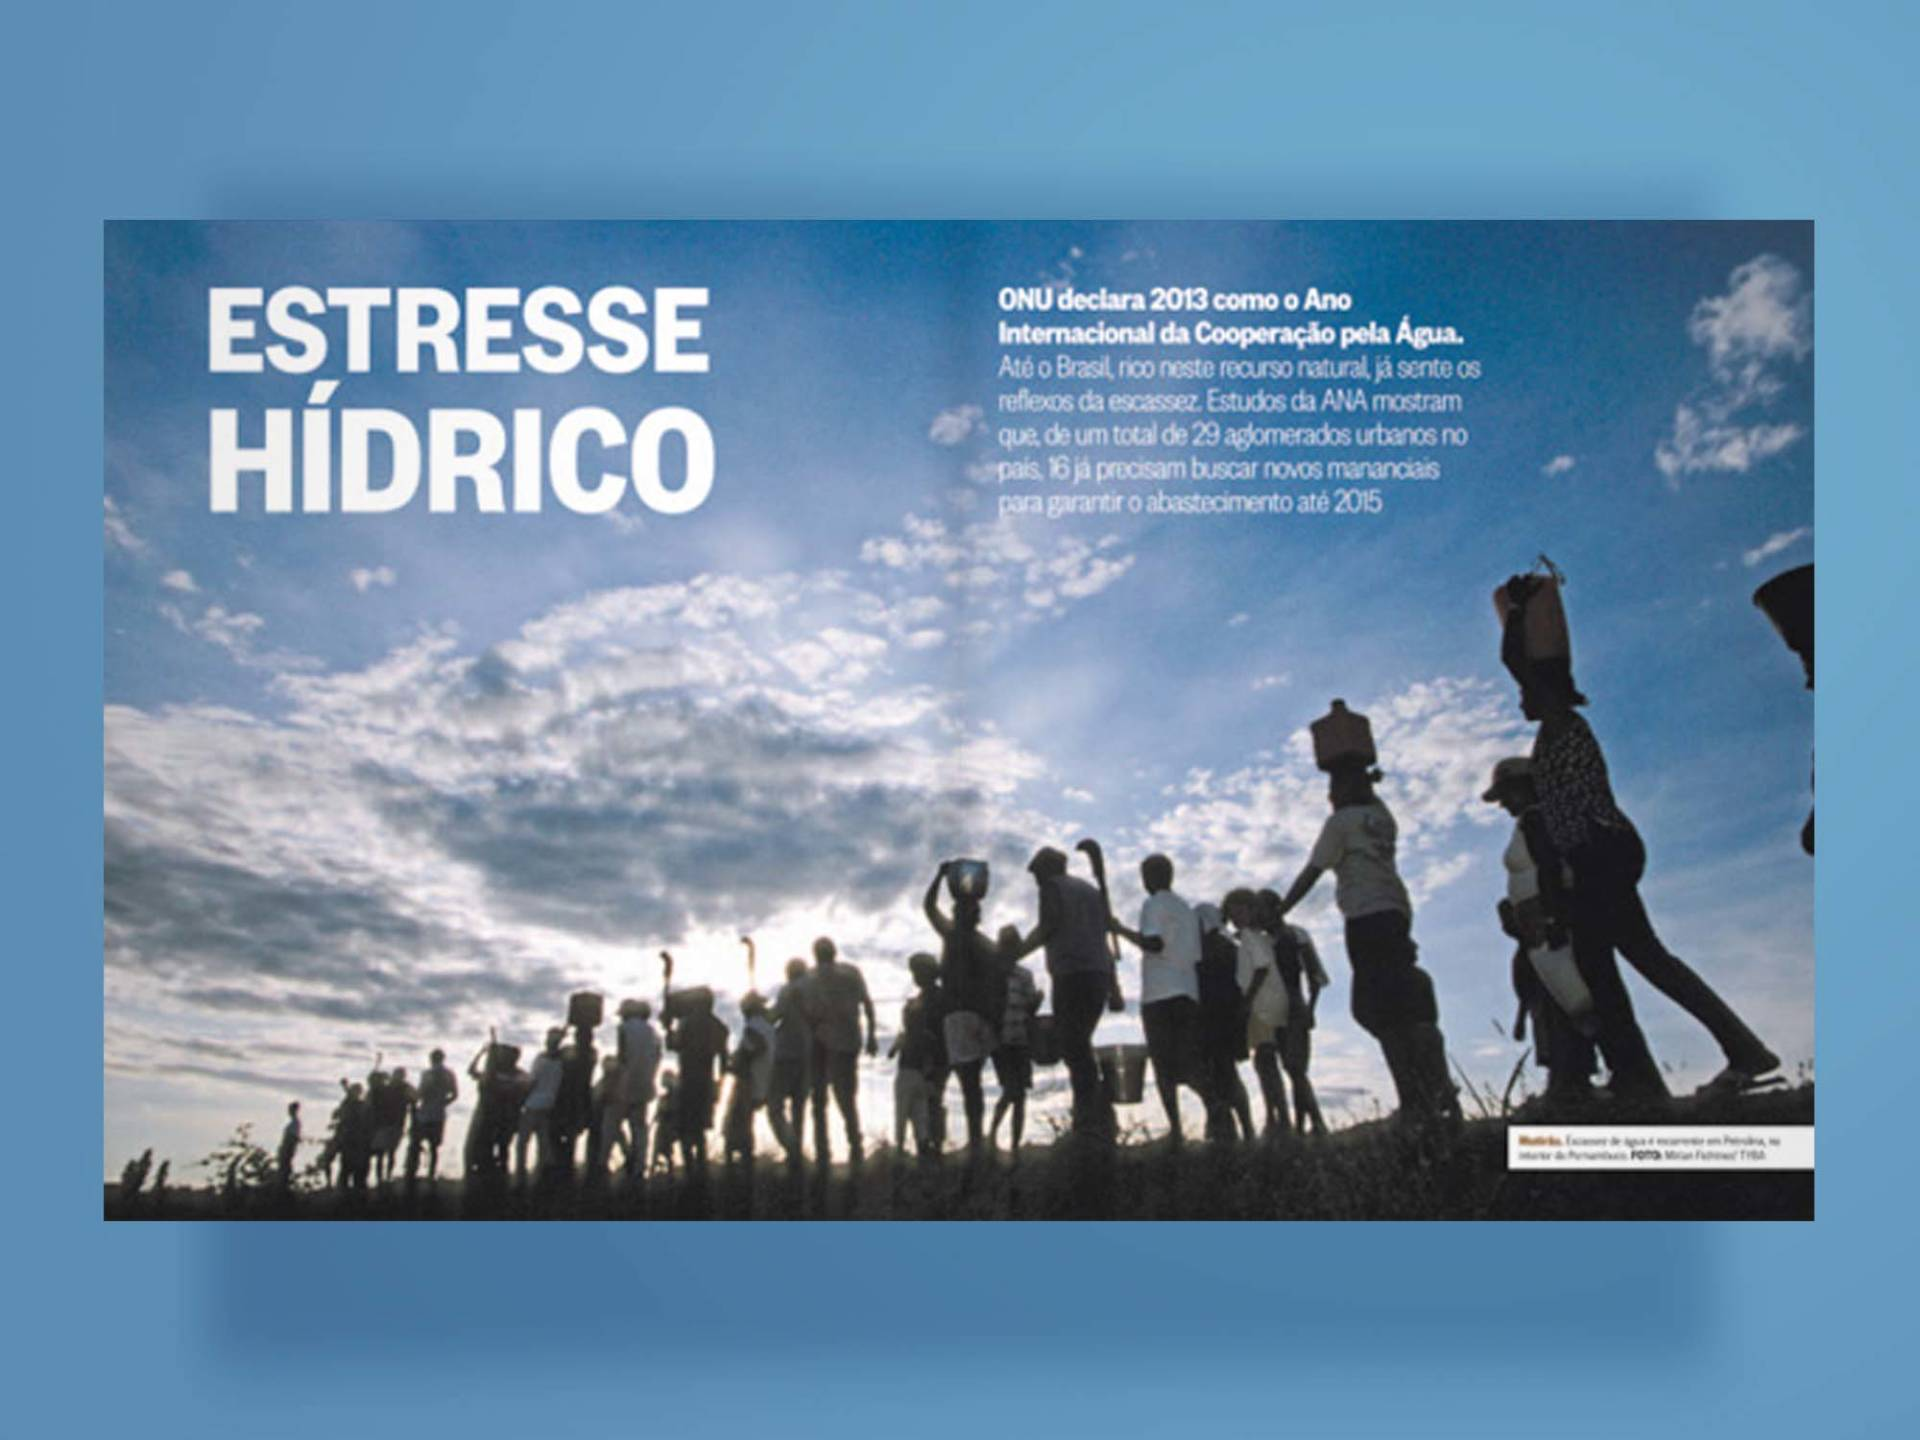 O_Globo_Supplementi_10_Wenceslau_News_Design_